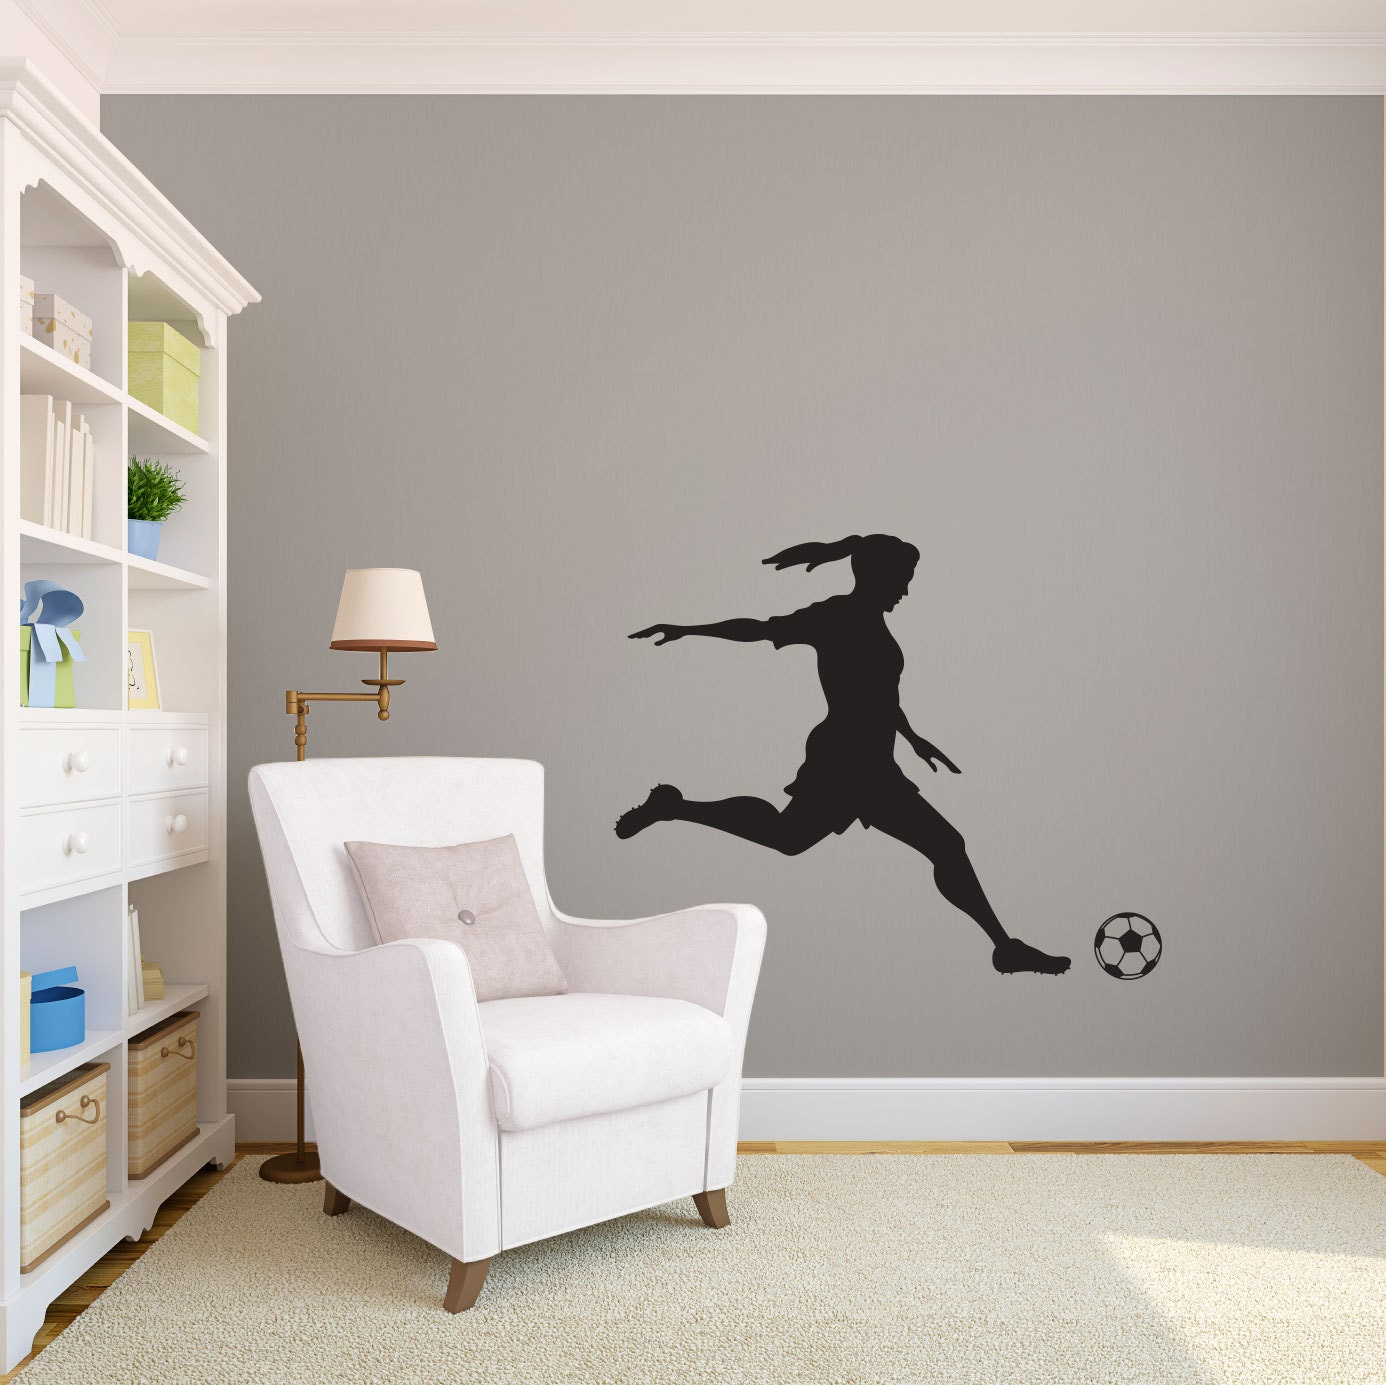 ?zoom & Medium Girl Soccer Player Kicking Silhouette Sports Wall